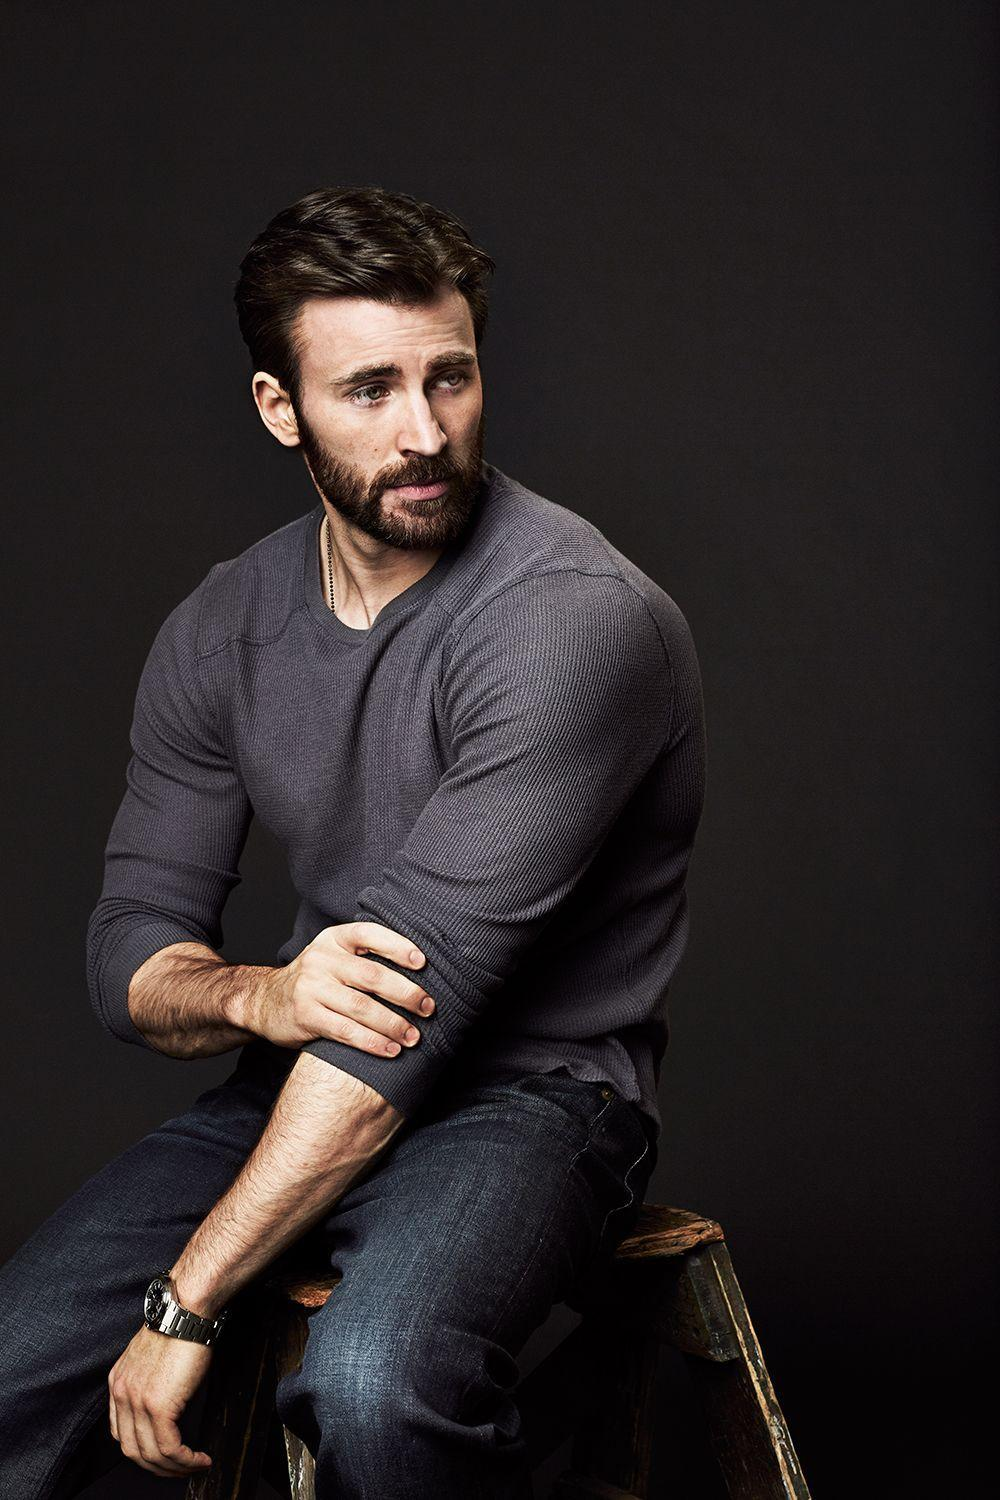 HD Chris Evans Wallpapers and Photos | HD Men Wallpapers